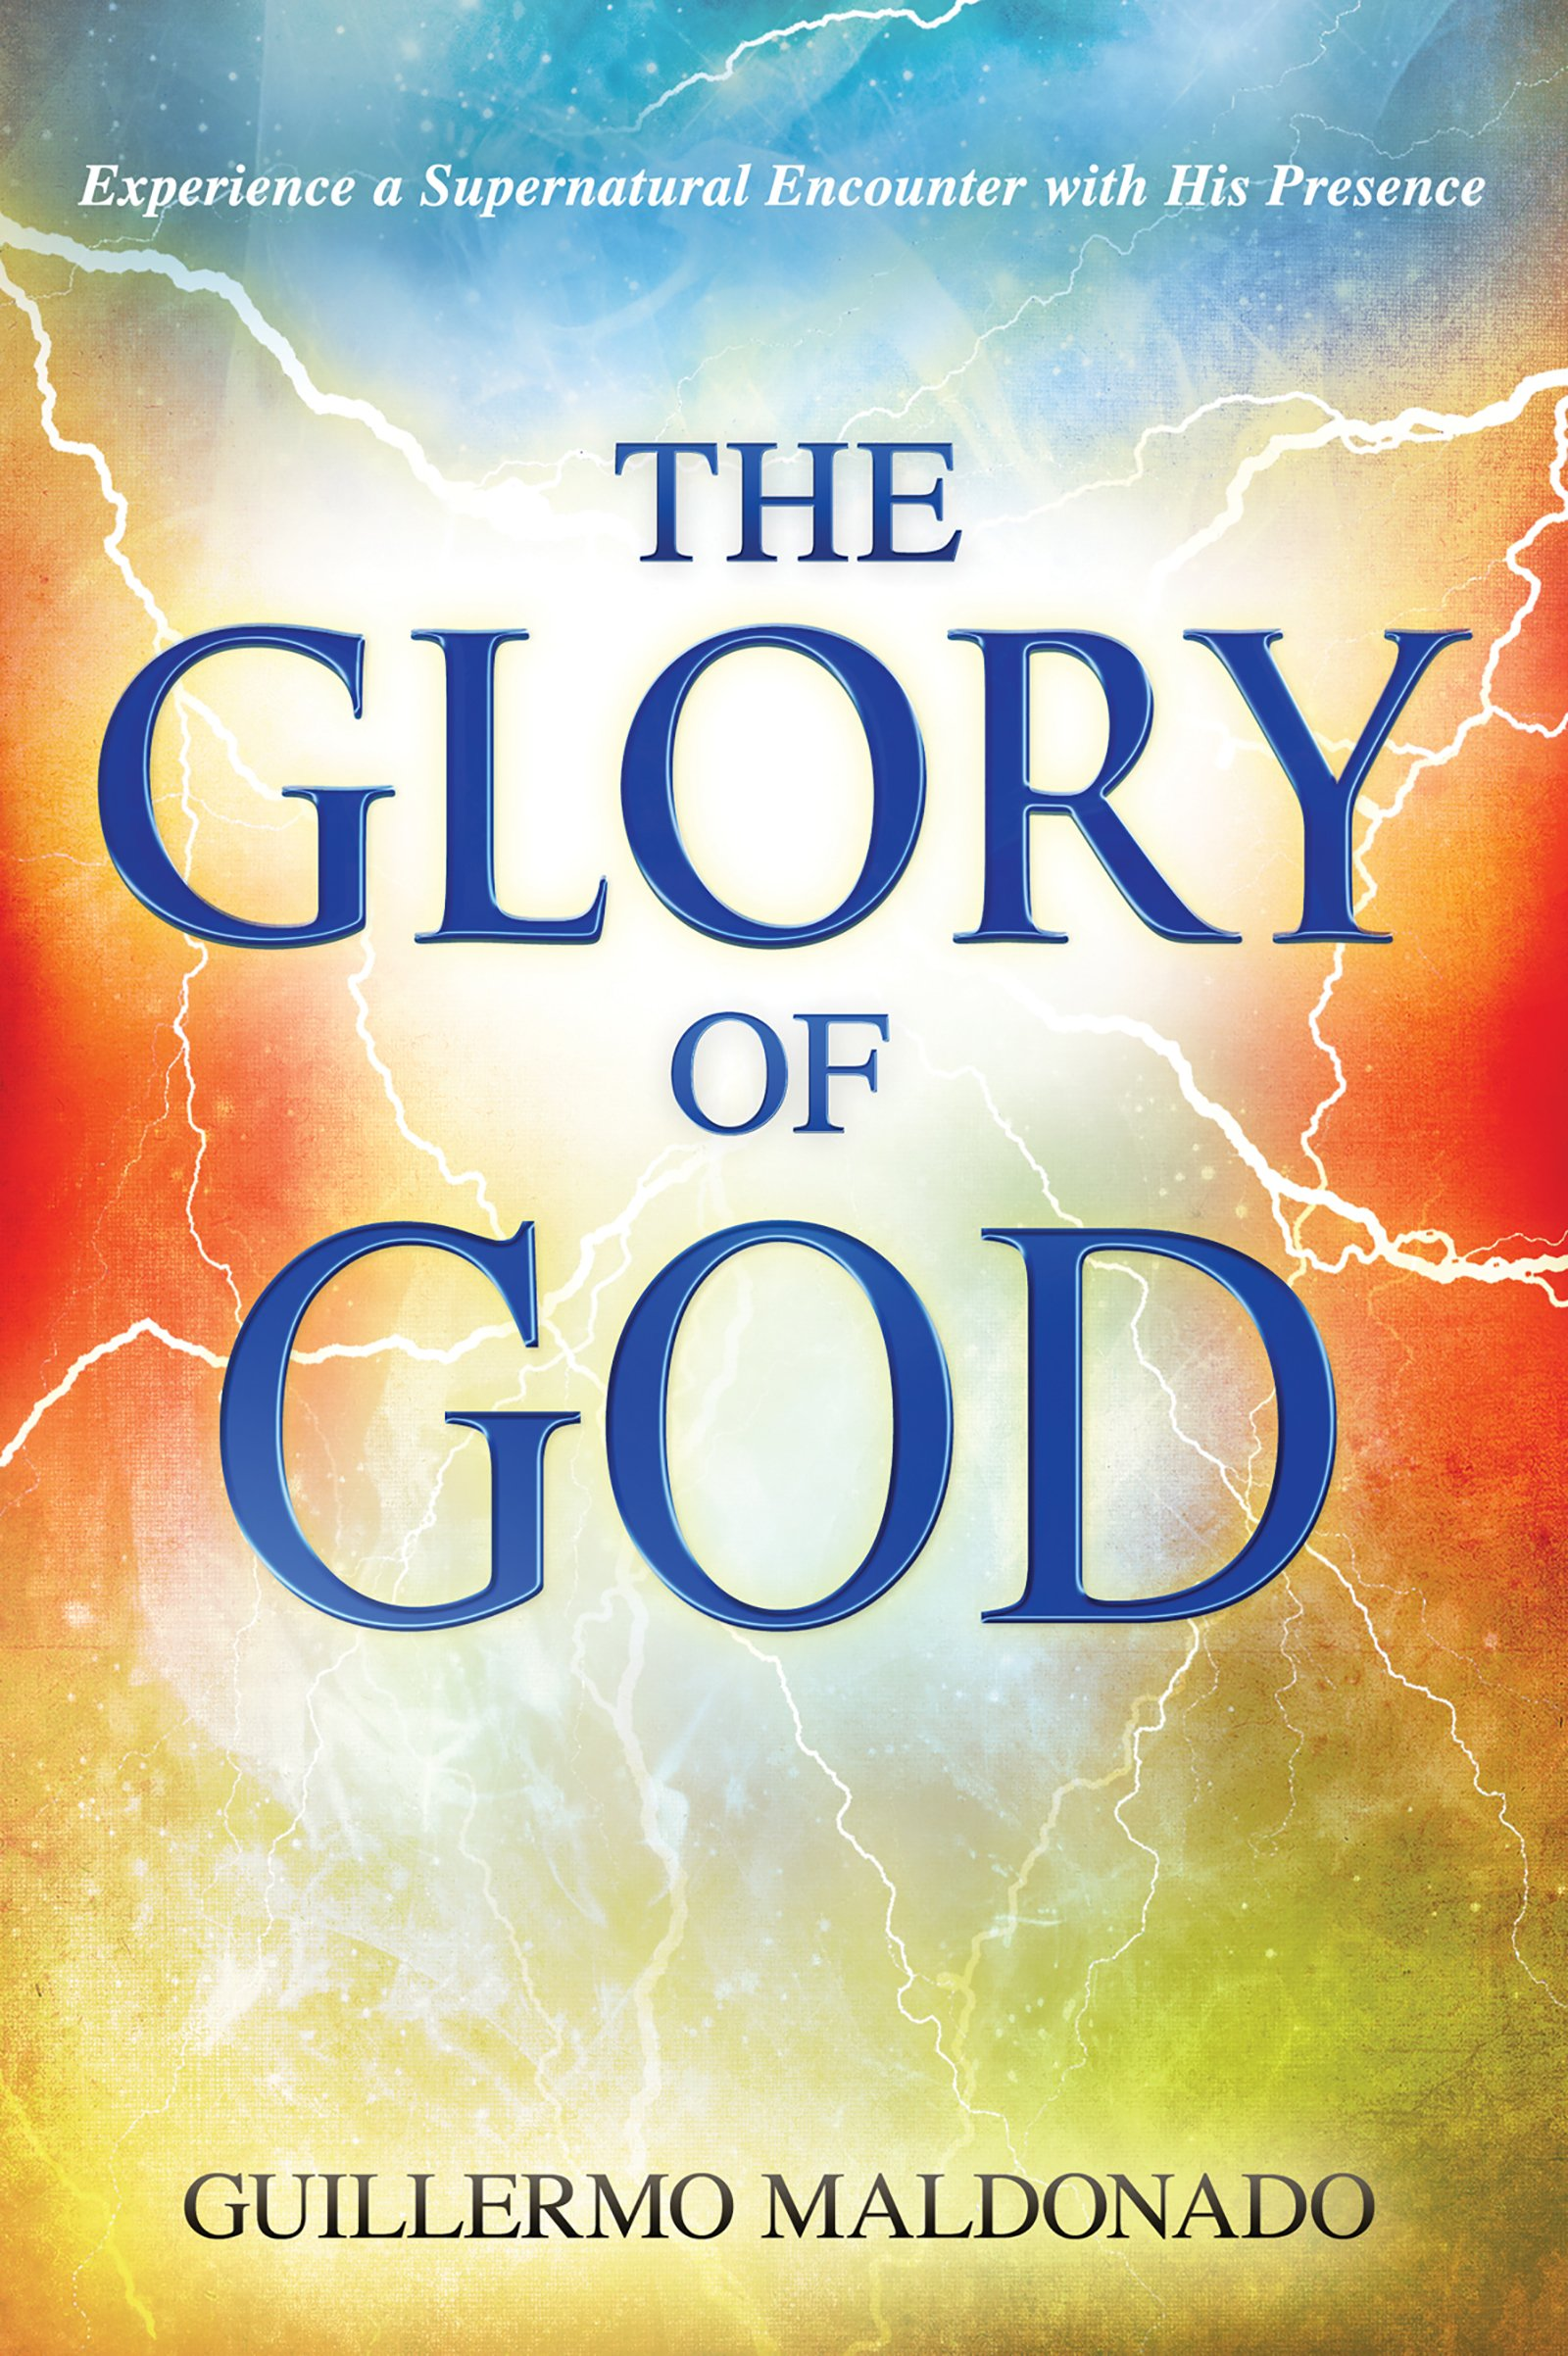 IN HIS PRESENCE...Witnessing The Glory Of God